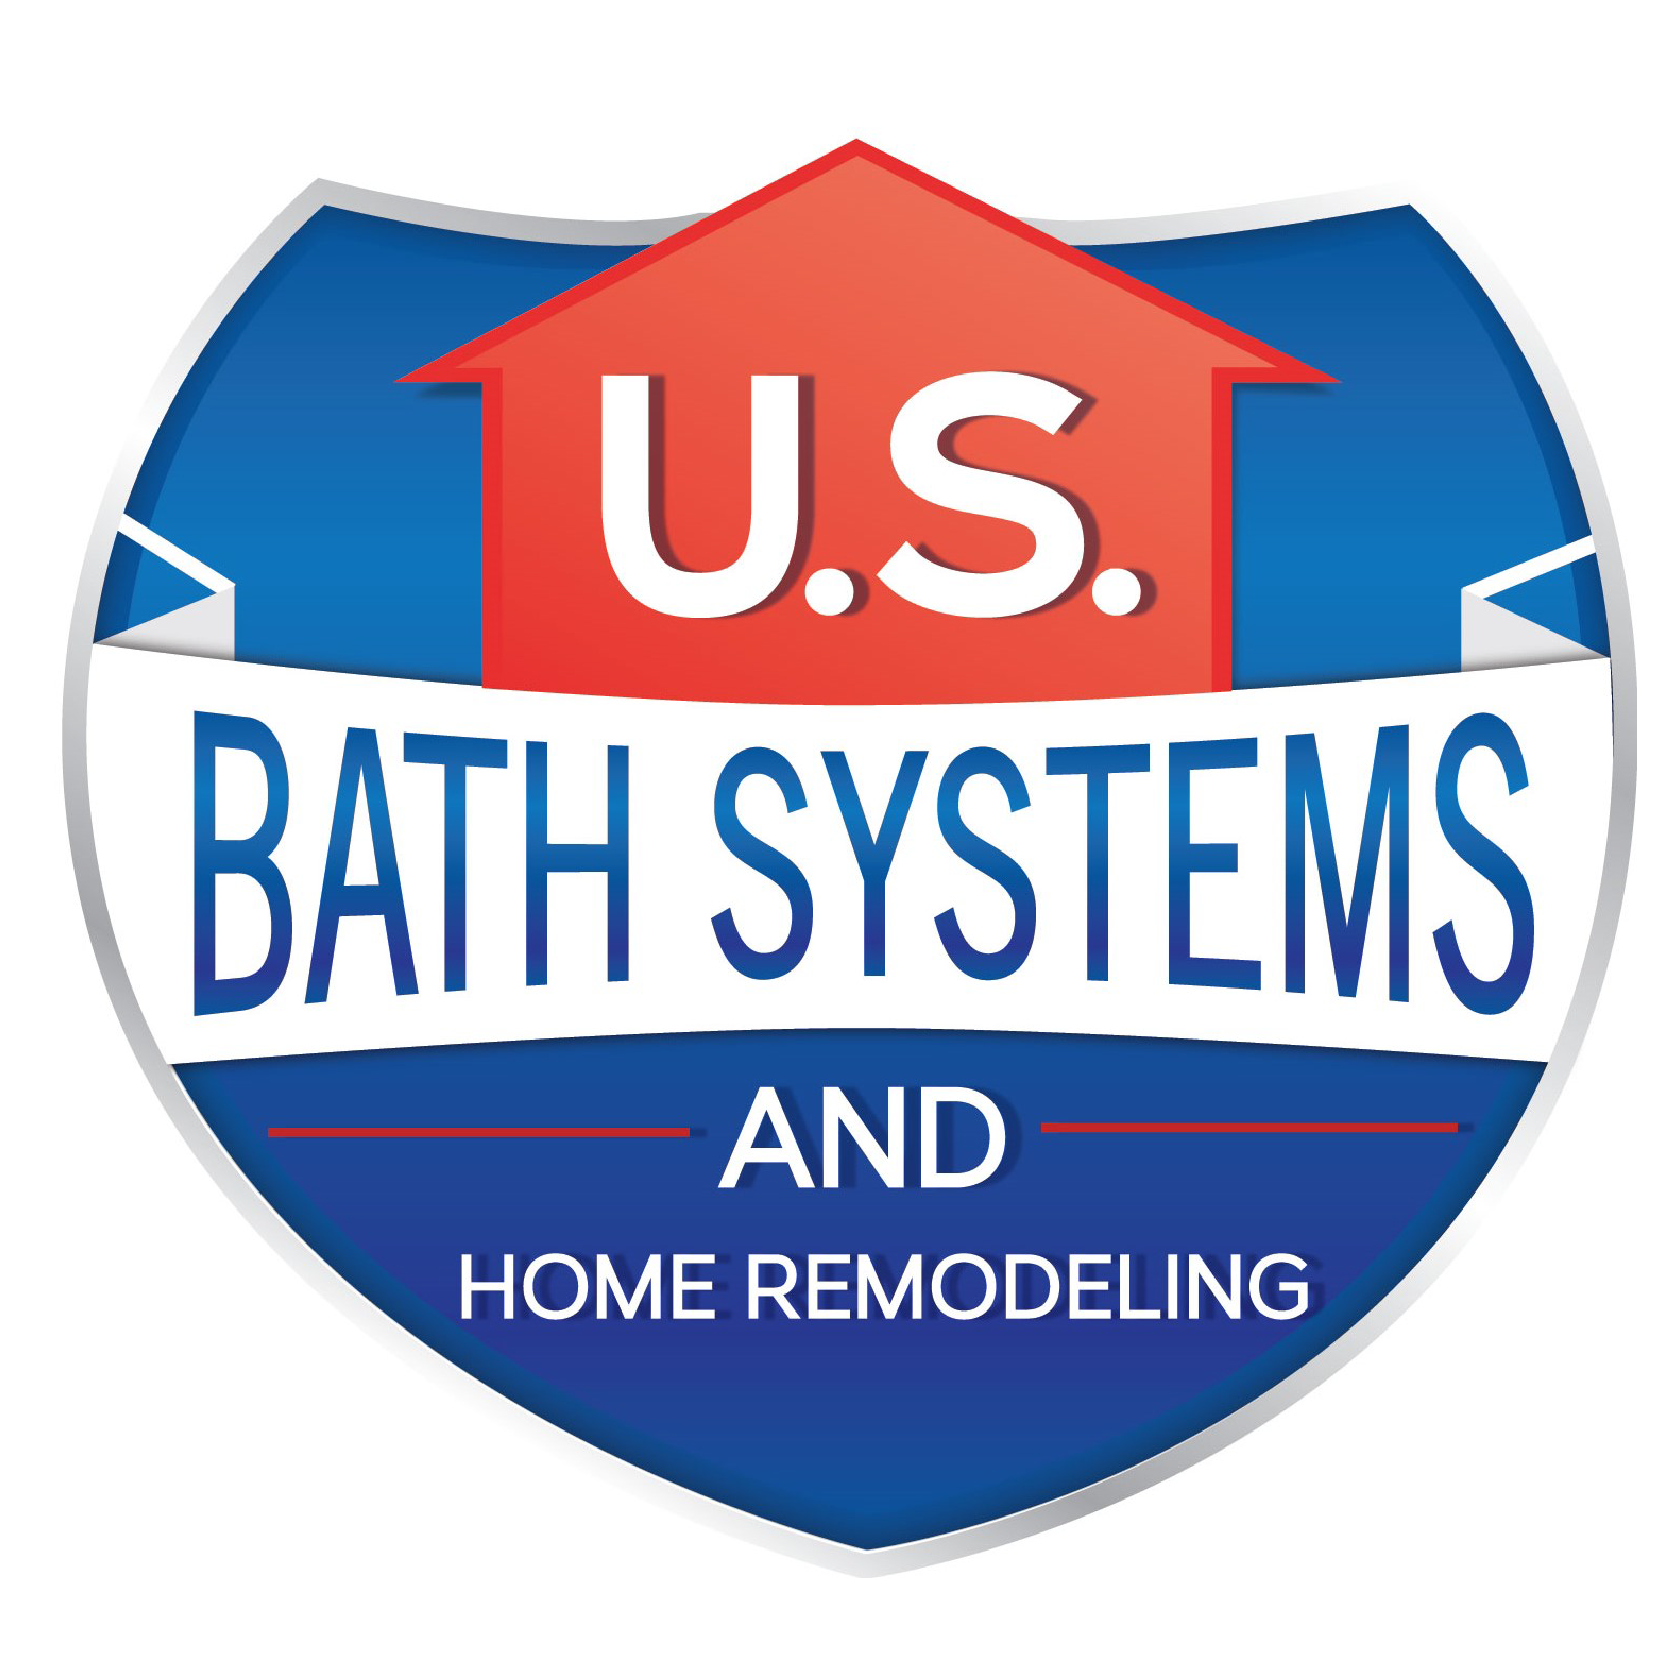 Bathroom Remodel Near Fargo ND Better Business Bureau Start With - Bathroom remodeling fargo nd